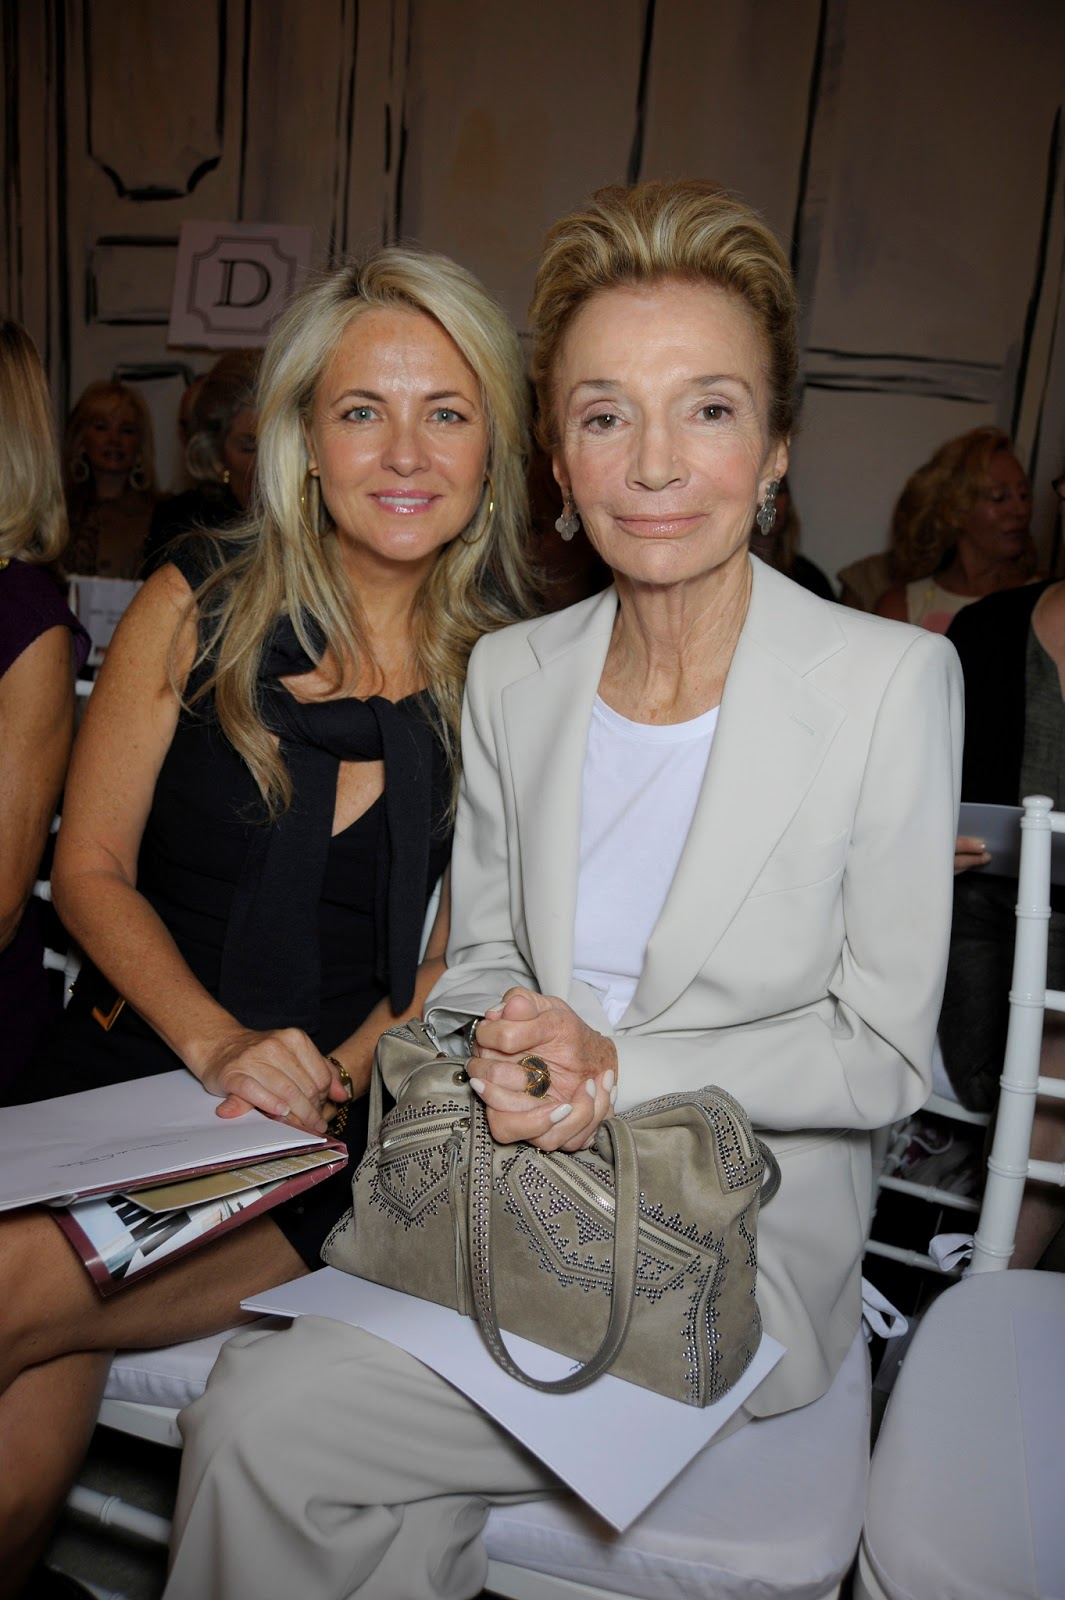 Lee Radziwill Daughter Related Keywords & Suggestions - Lee